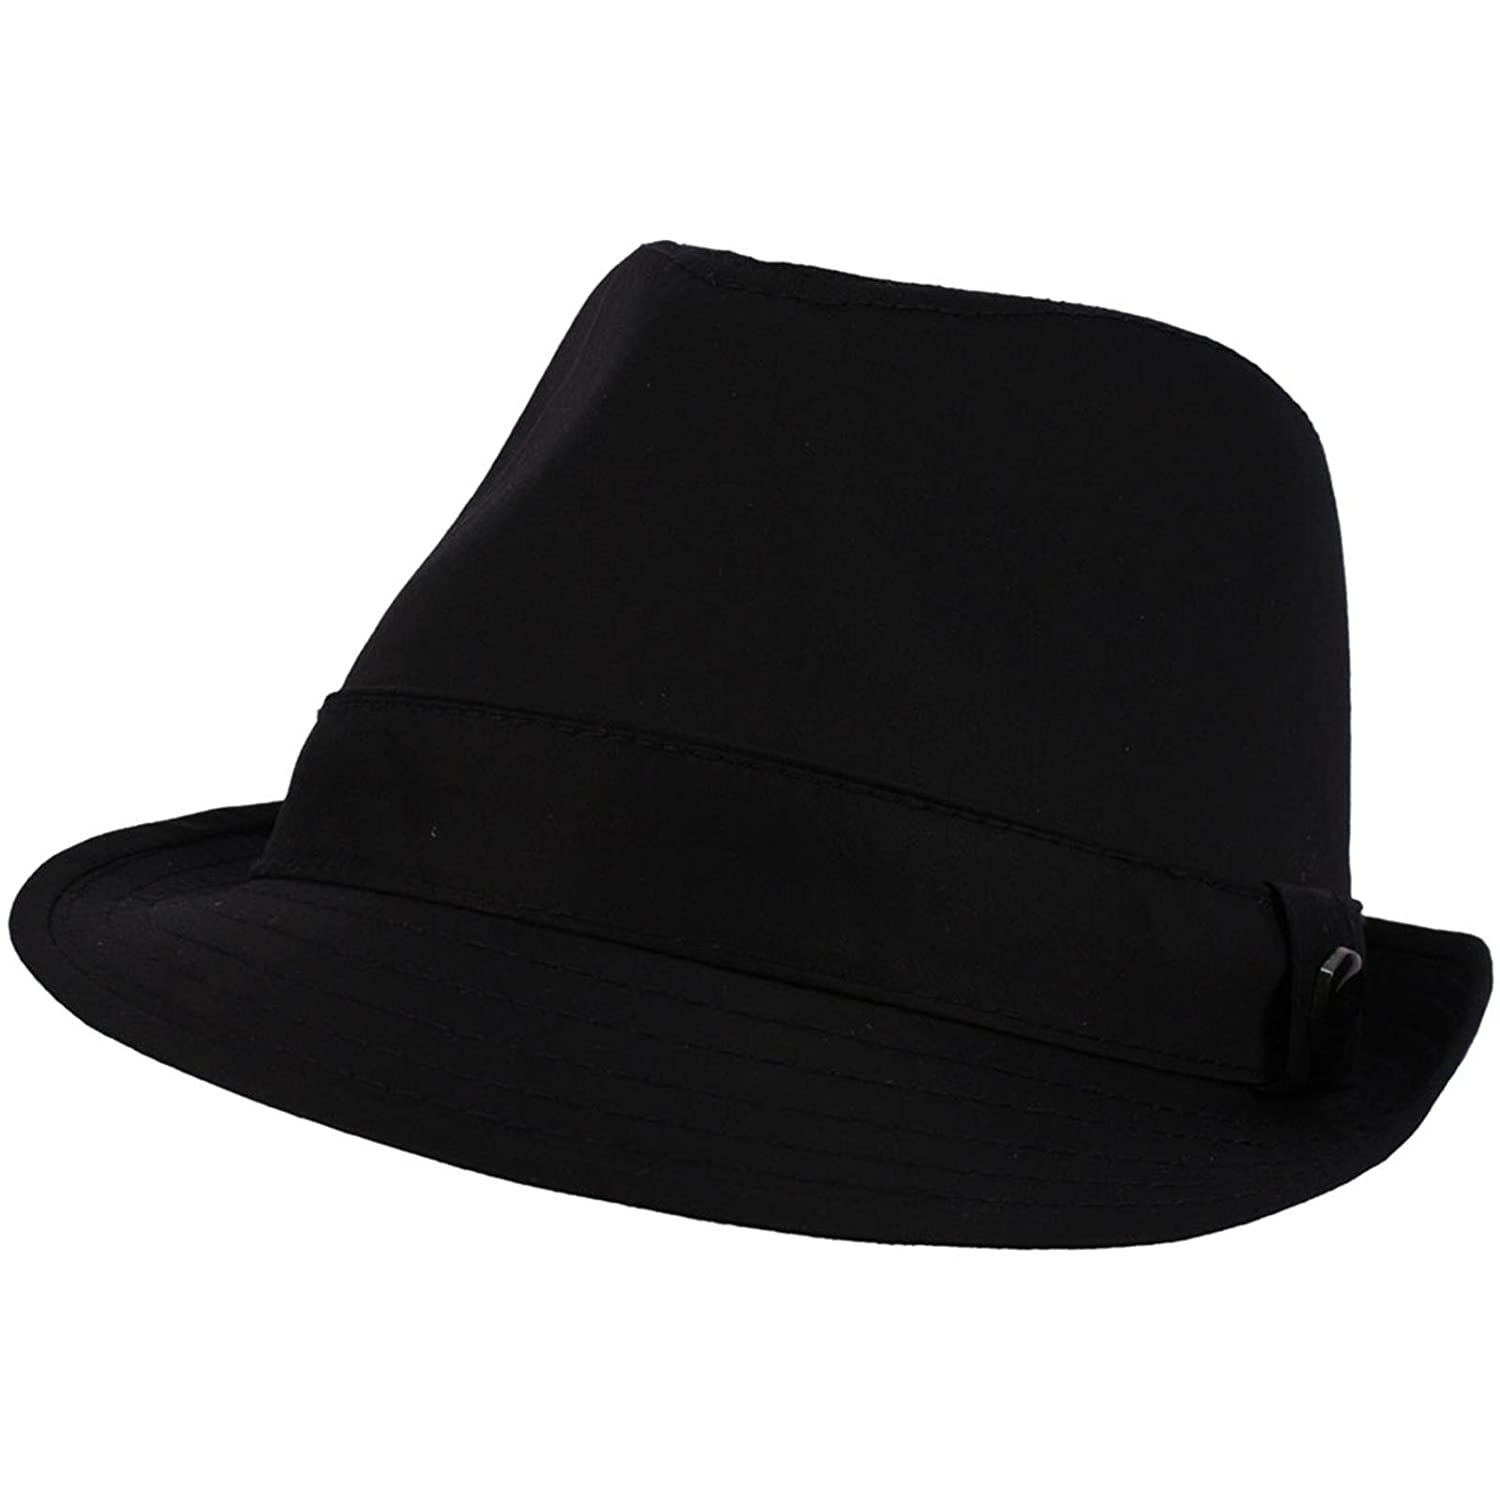 SK Hat shop Men s 100% Cotton Summer Cool Solid Blank Fedora Derby Trilby  Hat at Amazon Men s Clothing store  b4c92086dc0